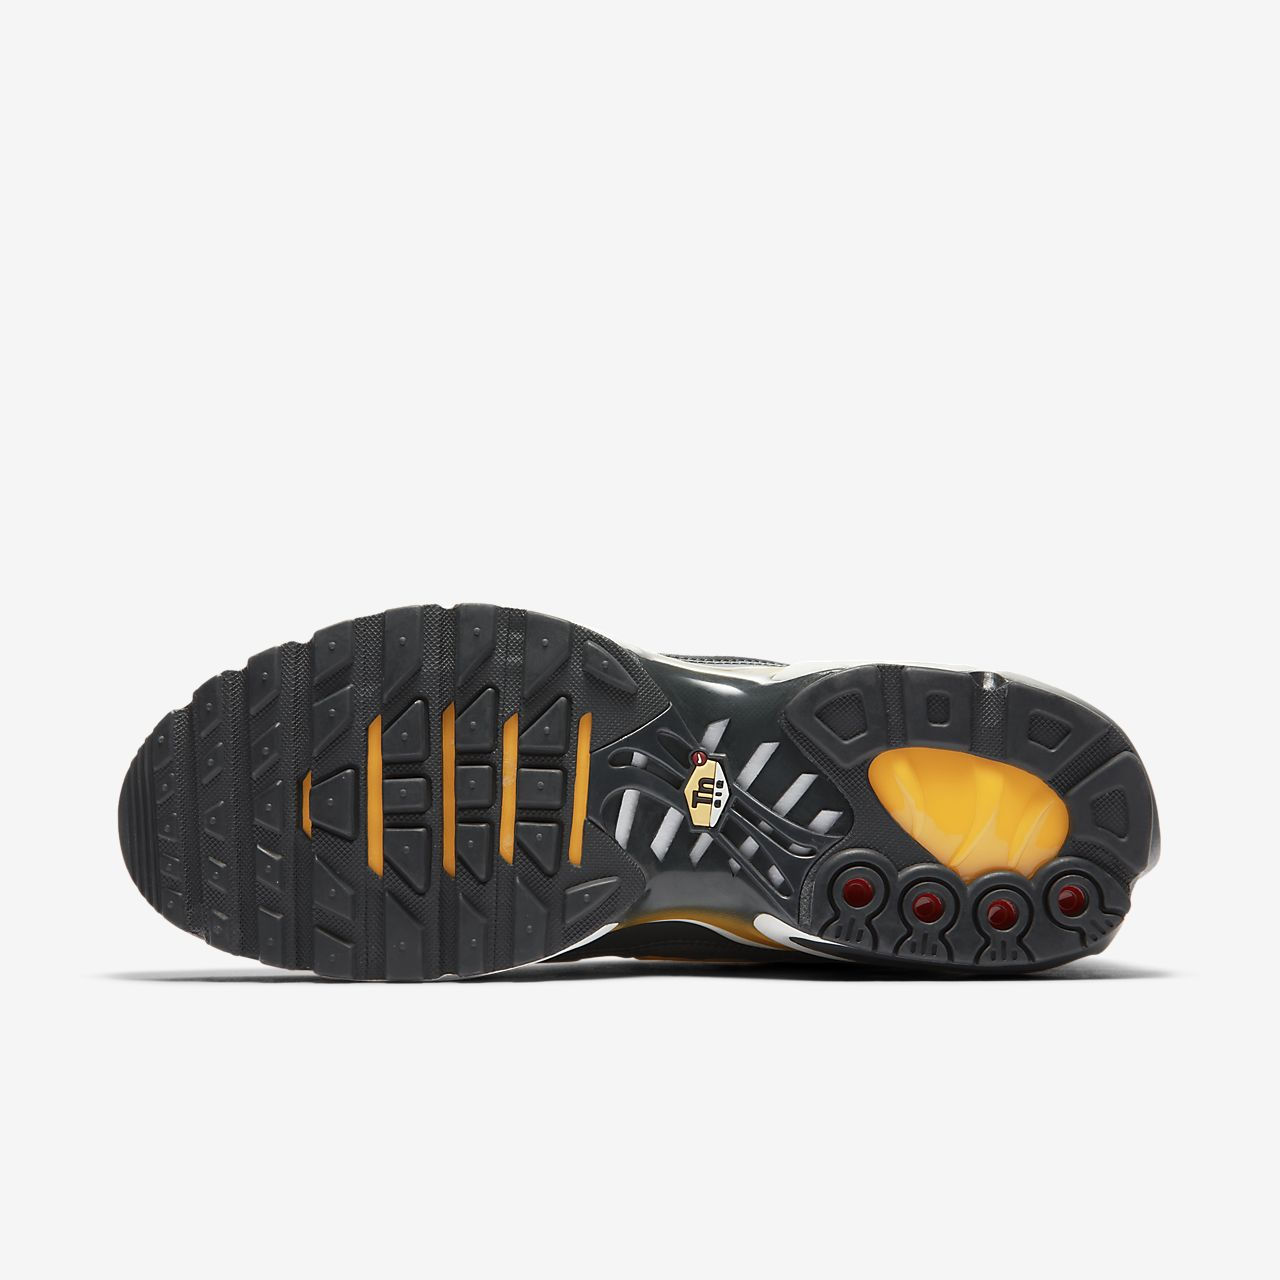 new styles 936c4 b9a74 ... Chaussure Nike Air Max Plus SE pour Homme